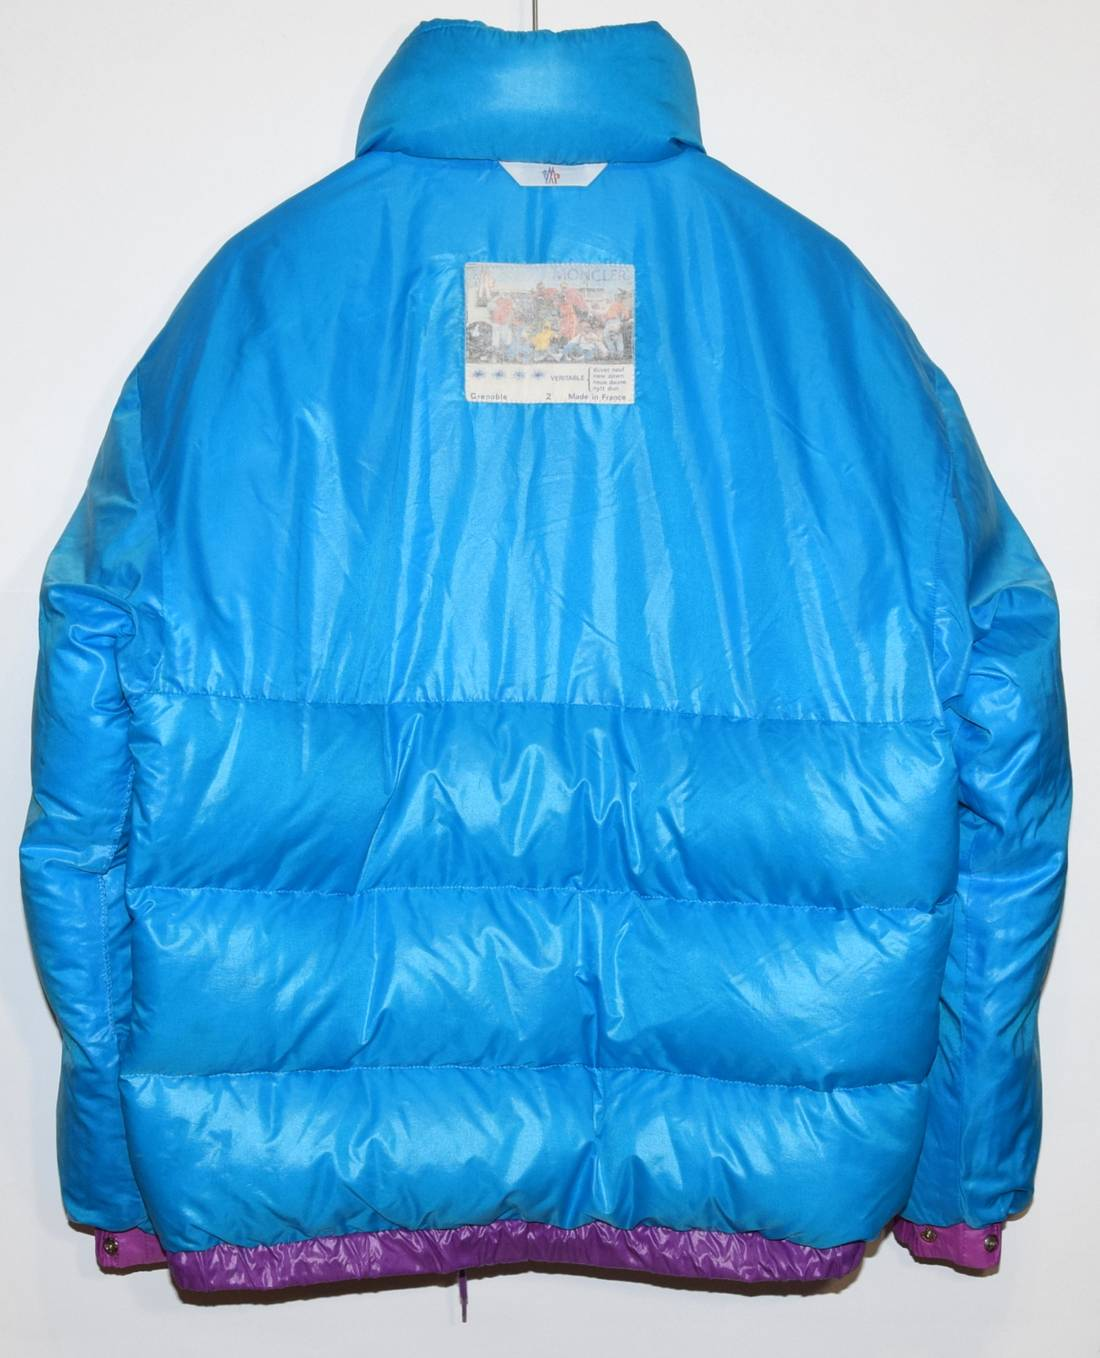 fc39964e3 clearance moncler coat sizing room heater 4f107 36a14